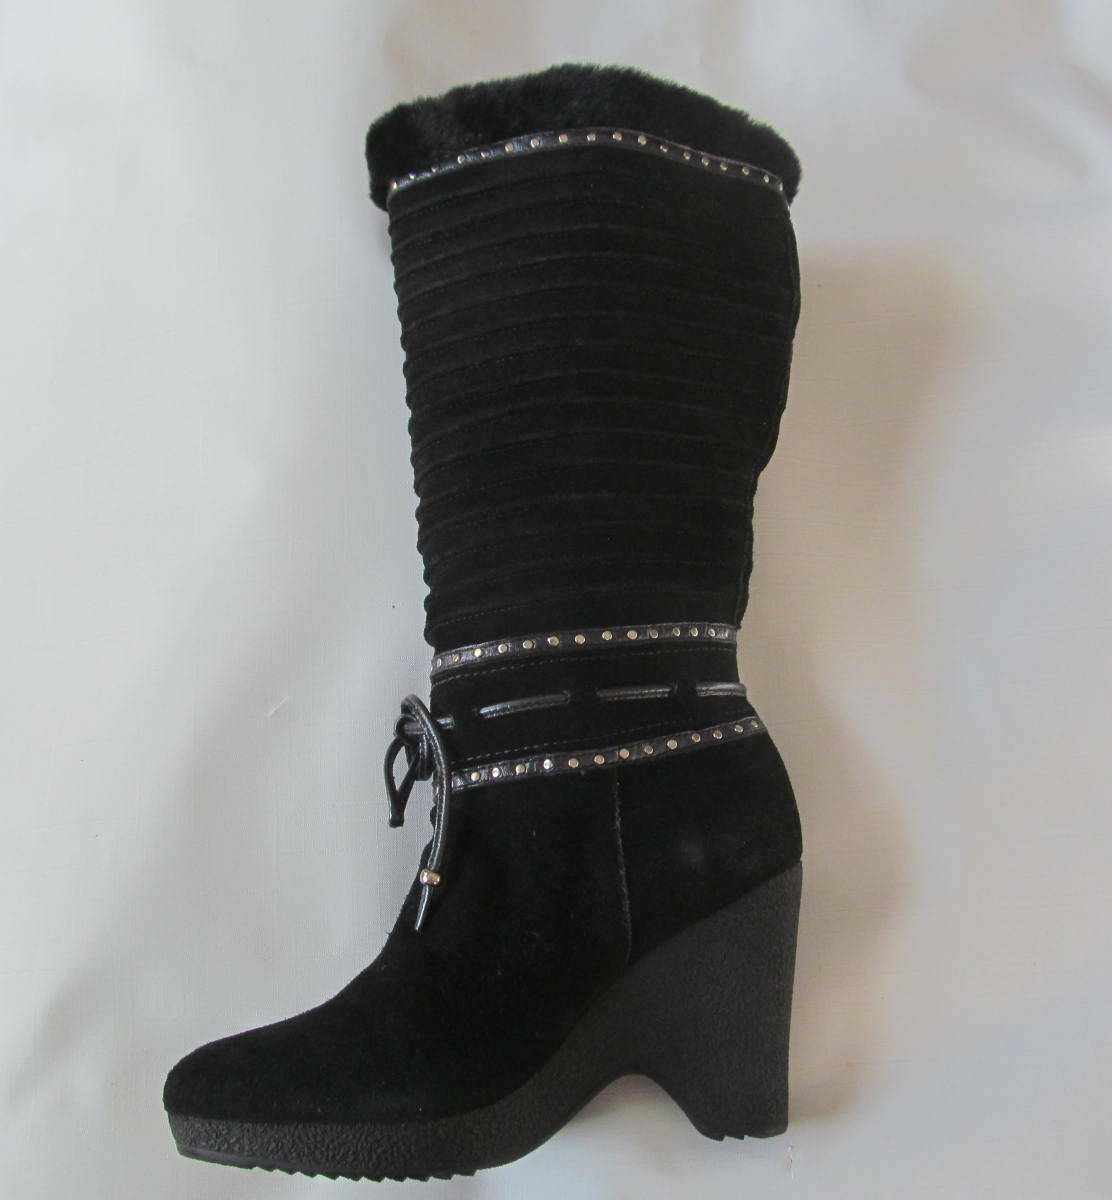 NEW Cole Haan Suede Black Boots size size size 5.5 a0e6bf